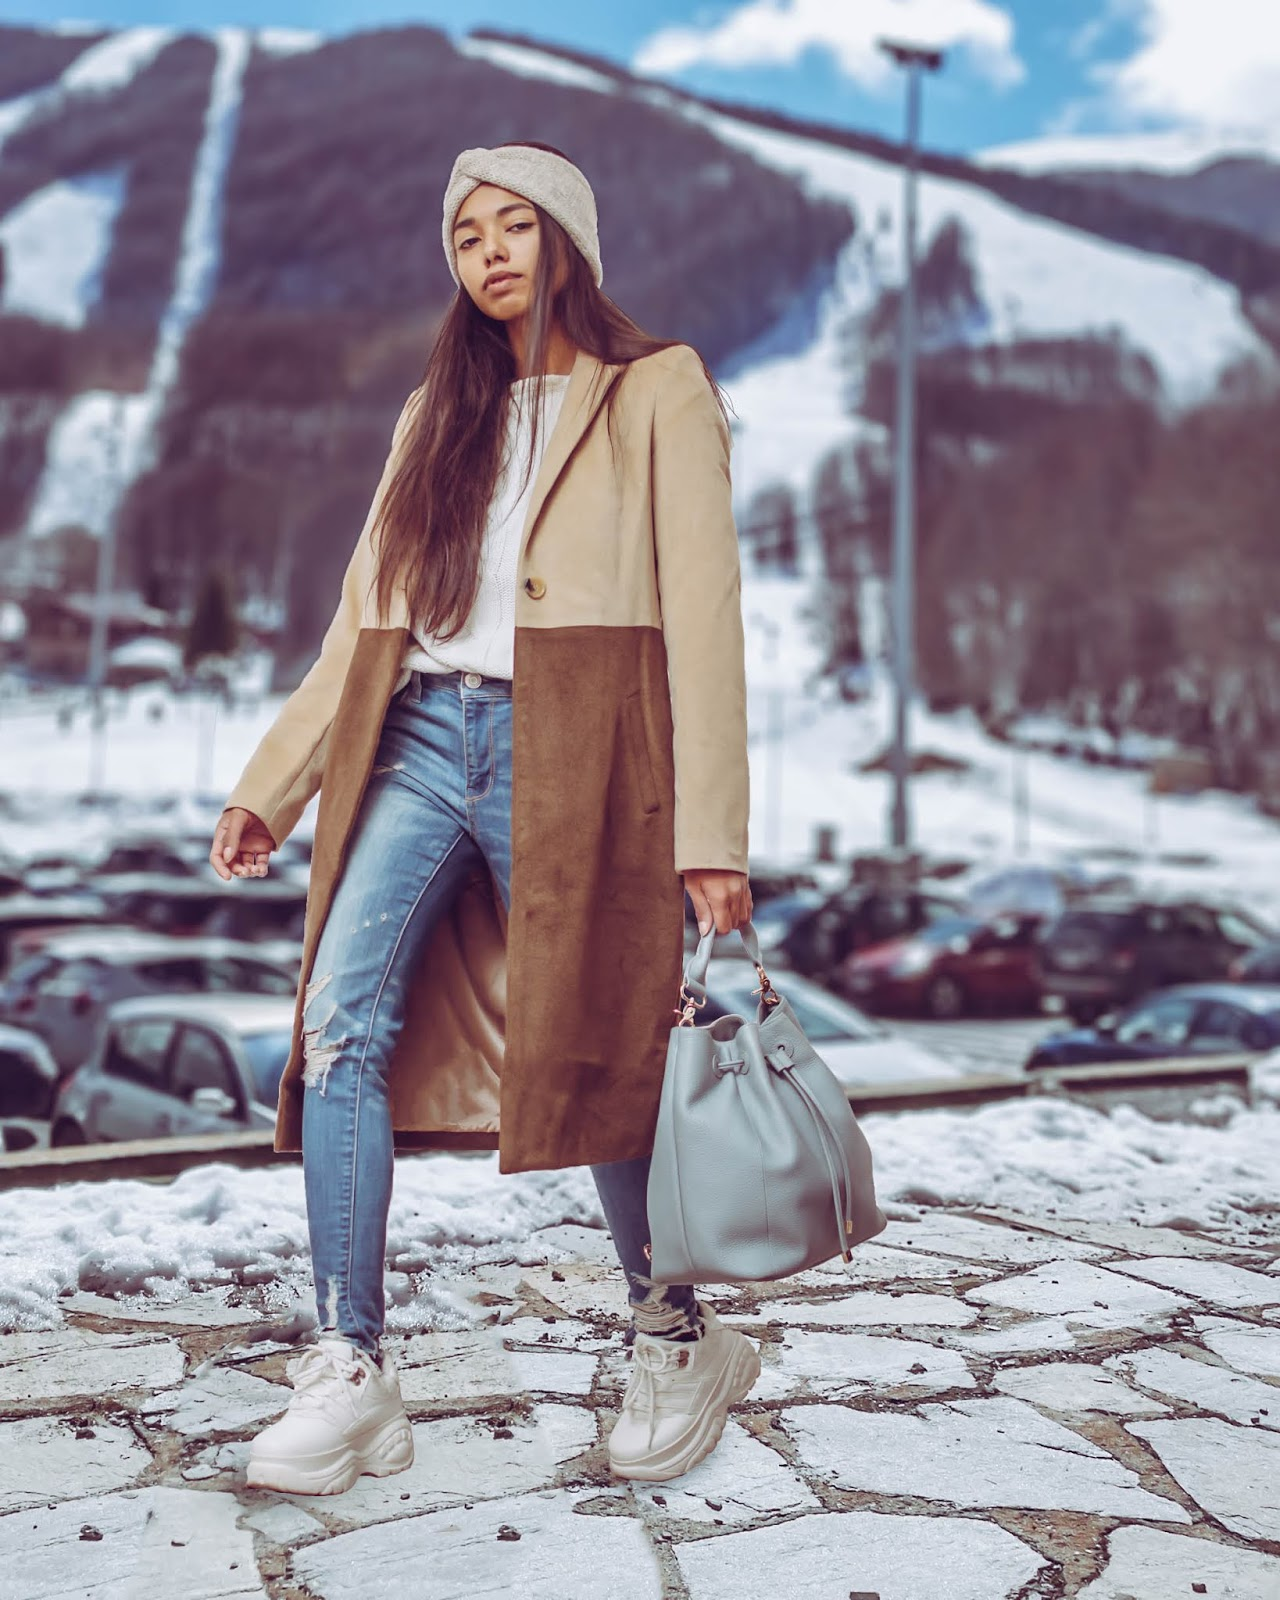 903584057c Comfortable travel outfit ideas for the Christmas holidays + December 2018  sales